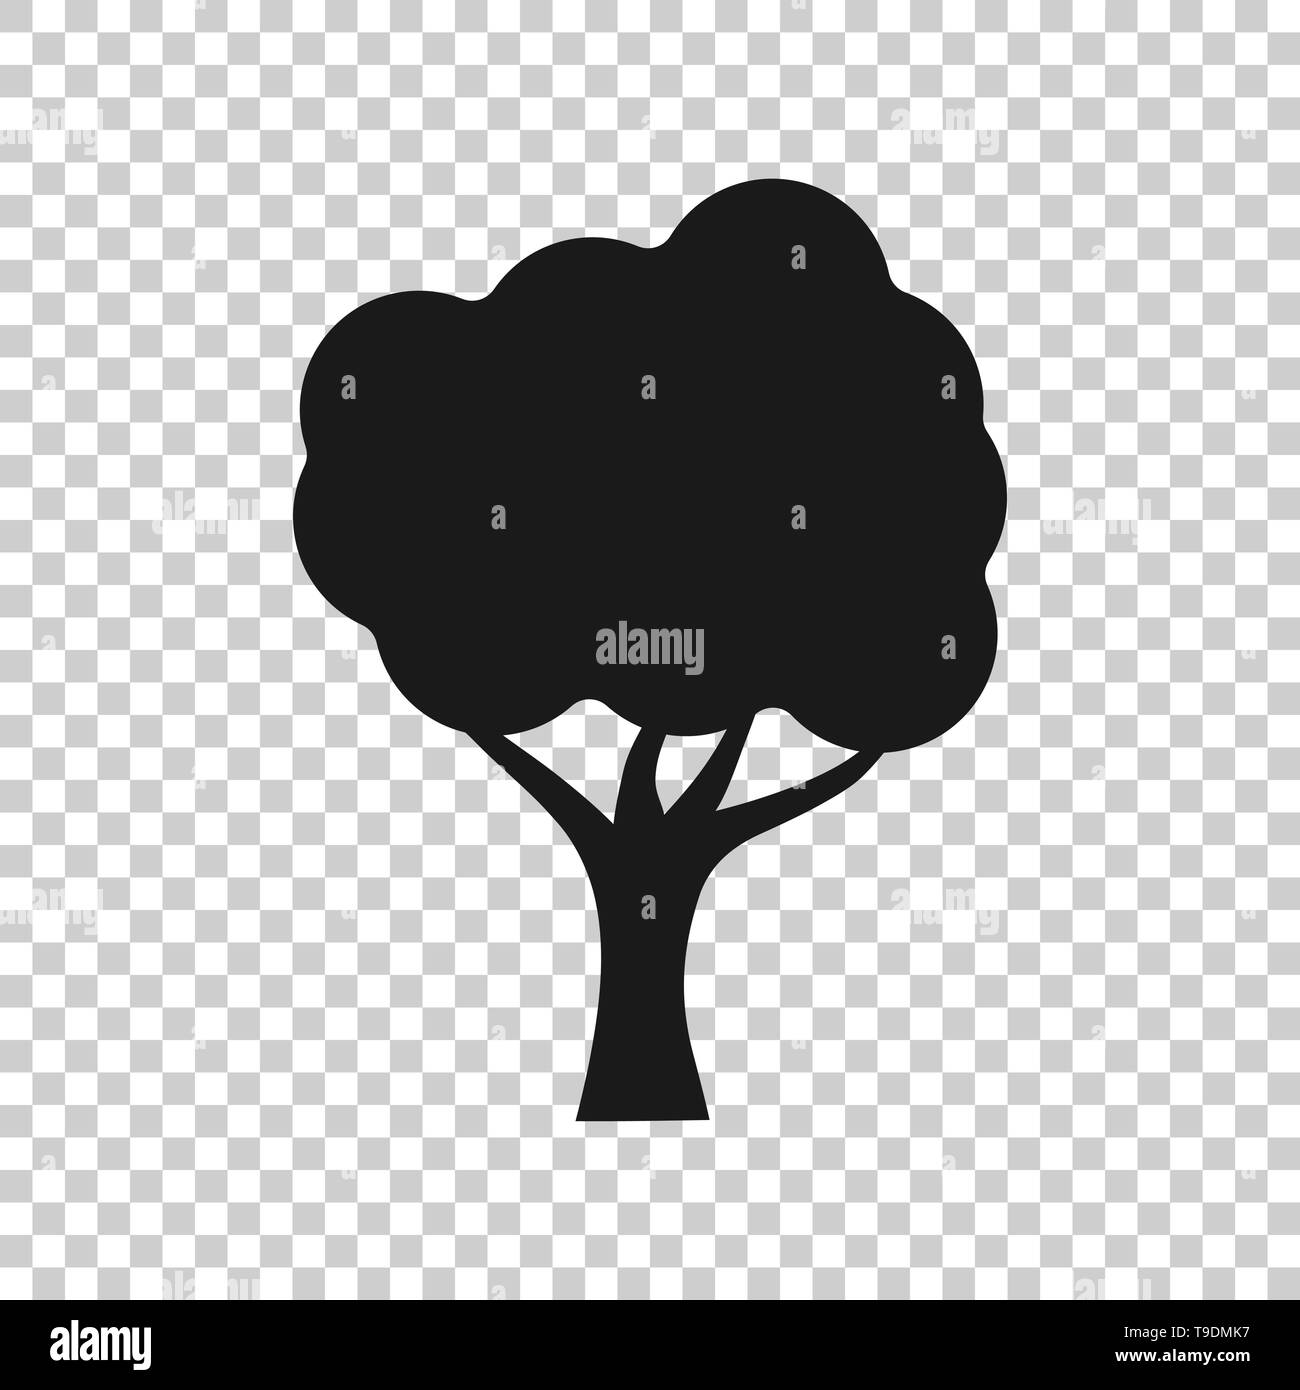 Tree sign icon in transparent style. Branch forest vector illustration on isolated background. Hardwood business concept. - Stock Image